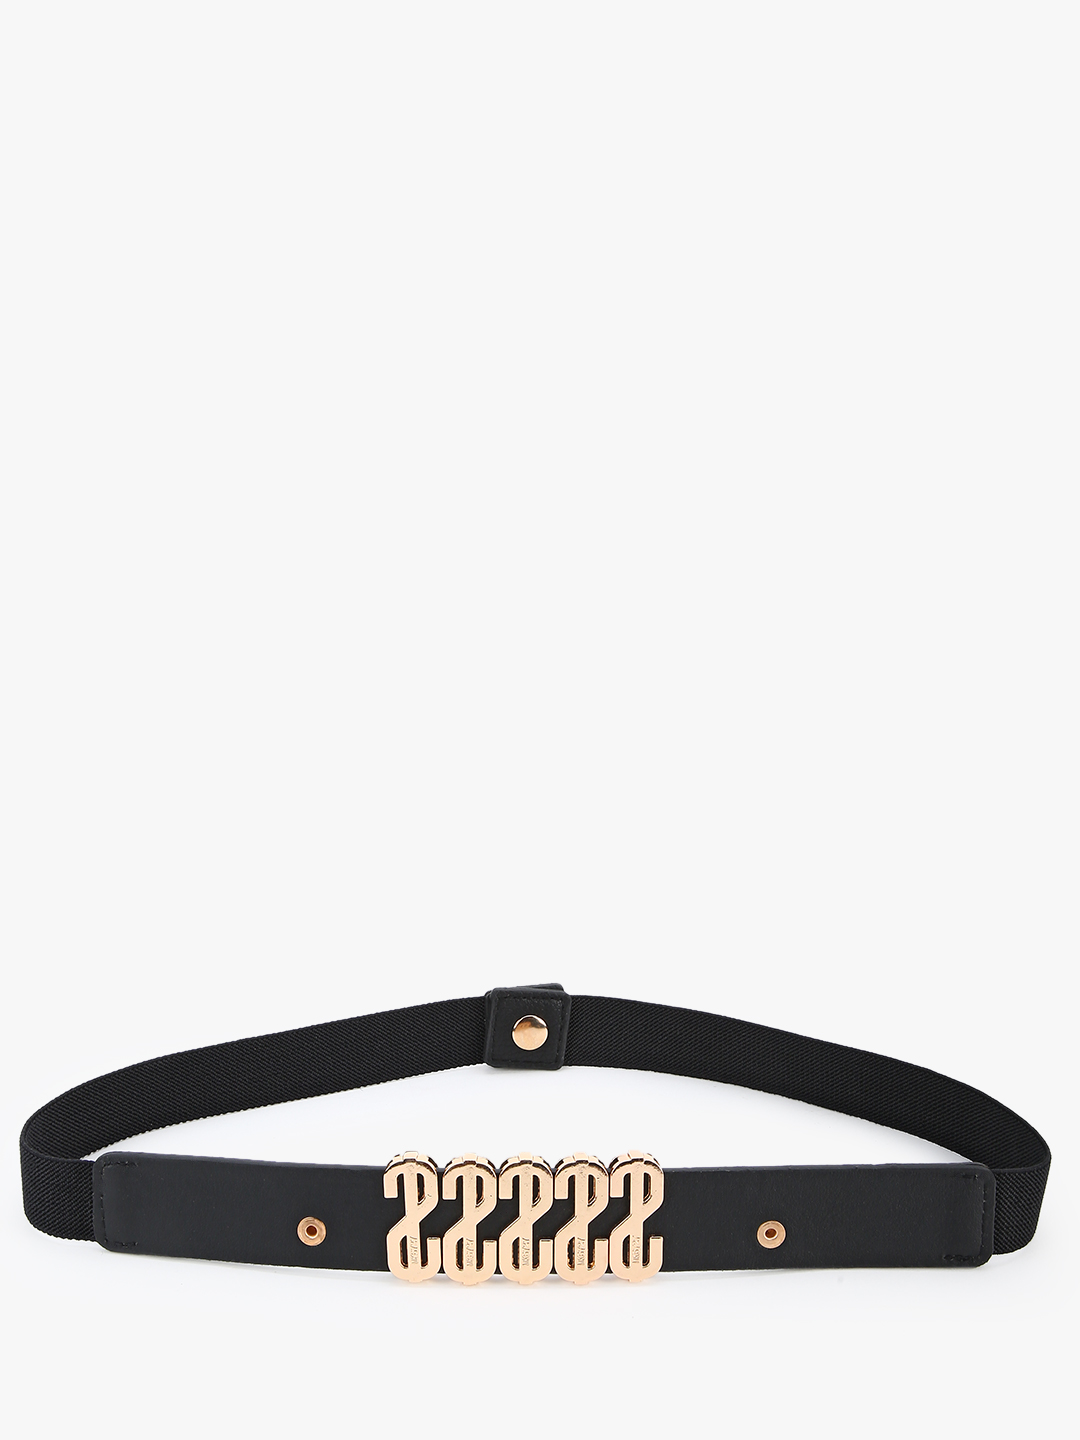 JAWBREAKER Black Dollar Sign Belt 1